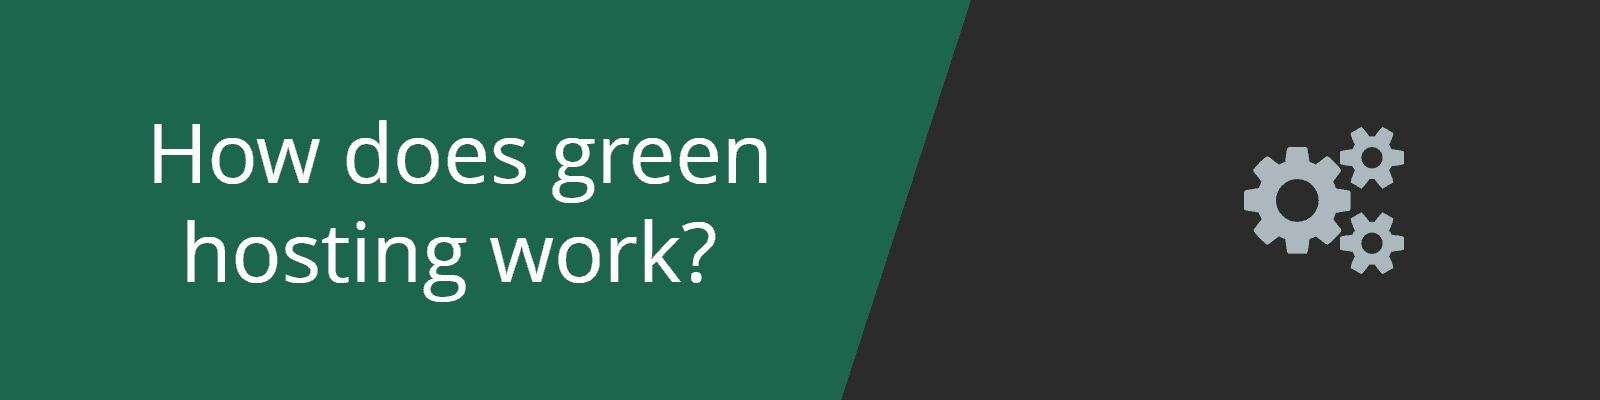 how does green hosting work